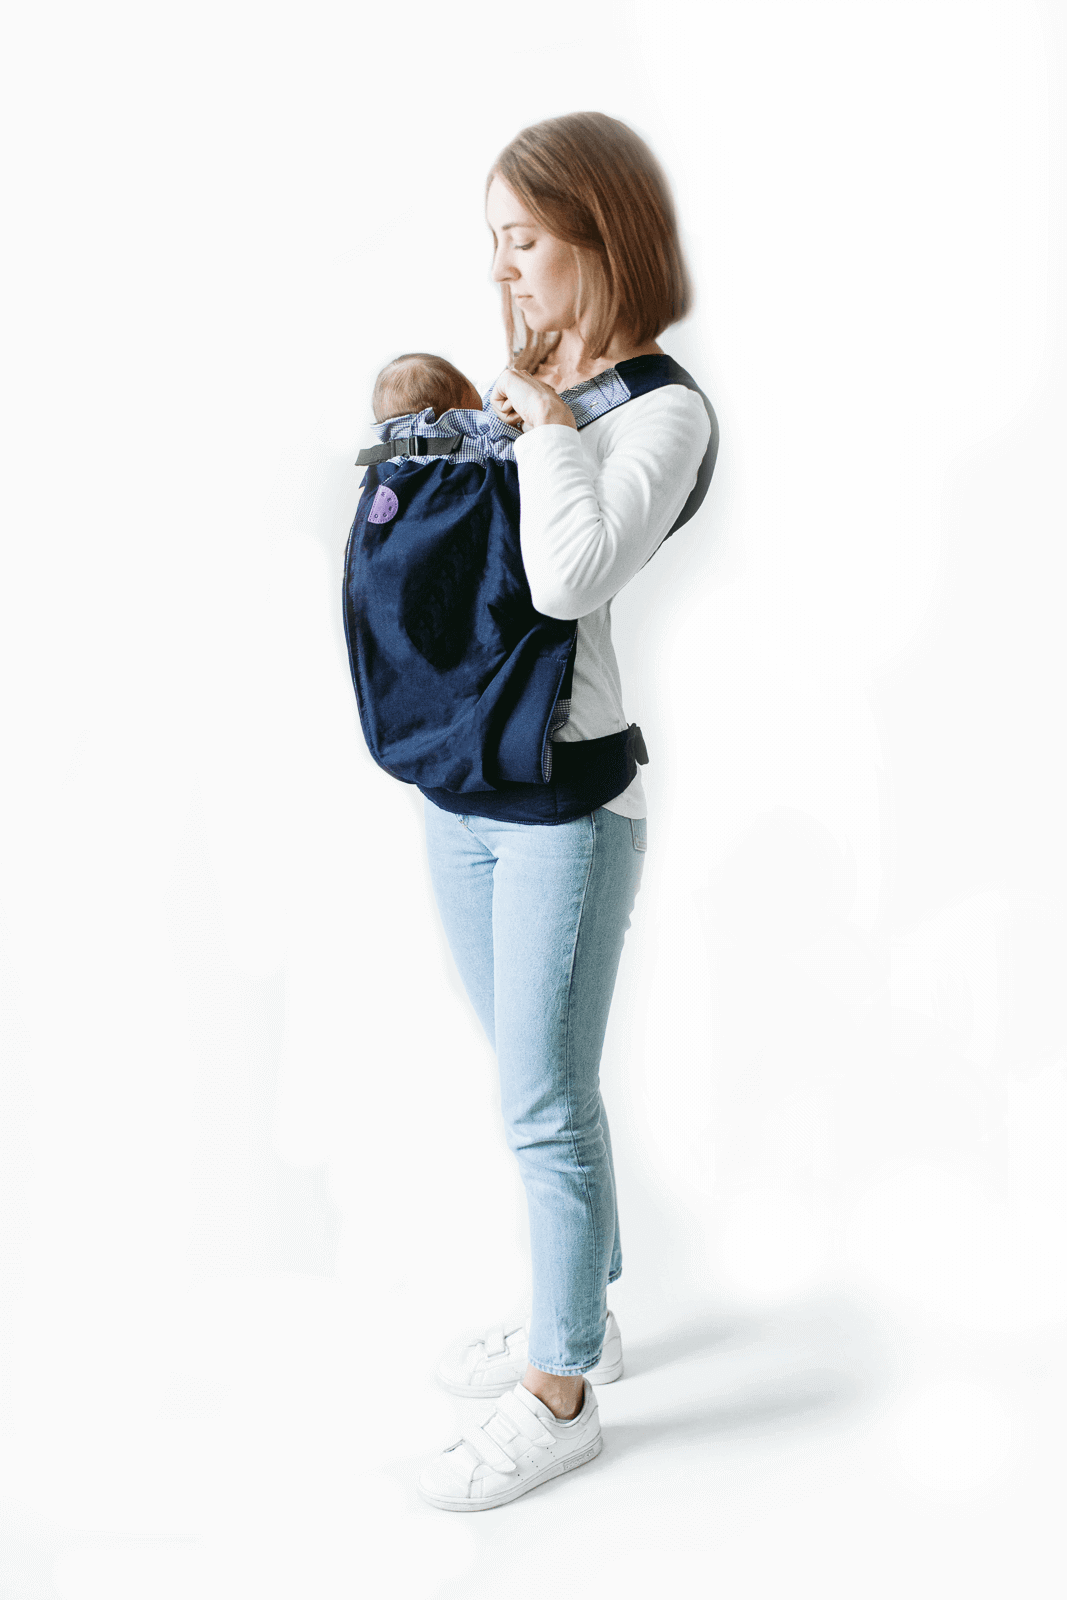 The Weego ORIGINAL Baby Carrier